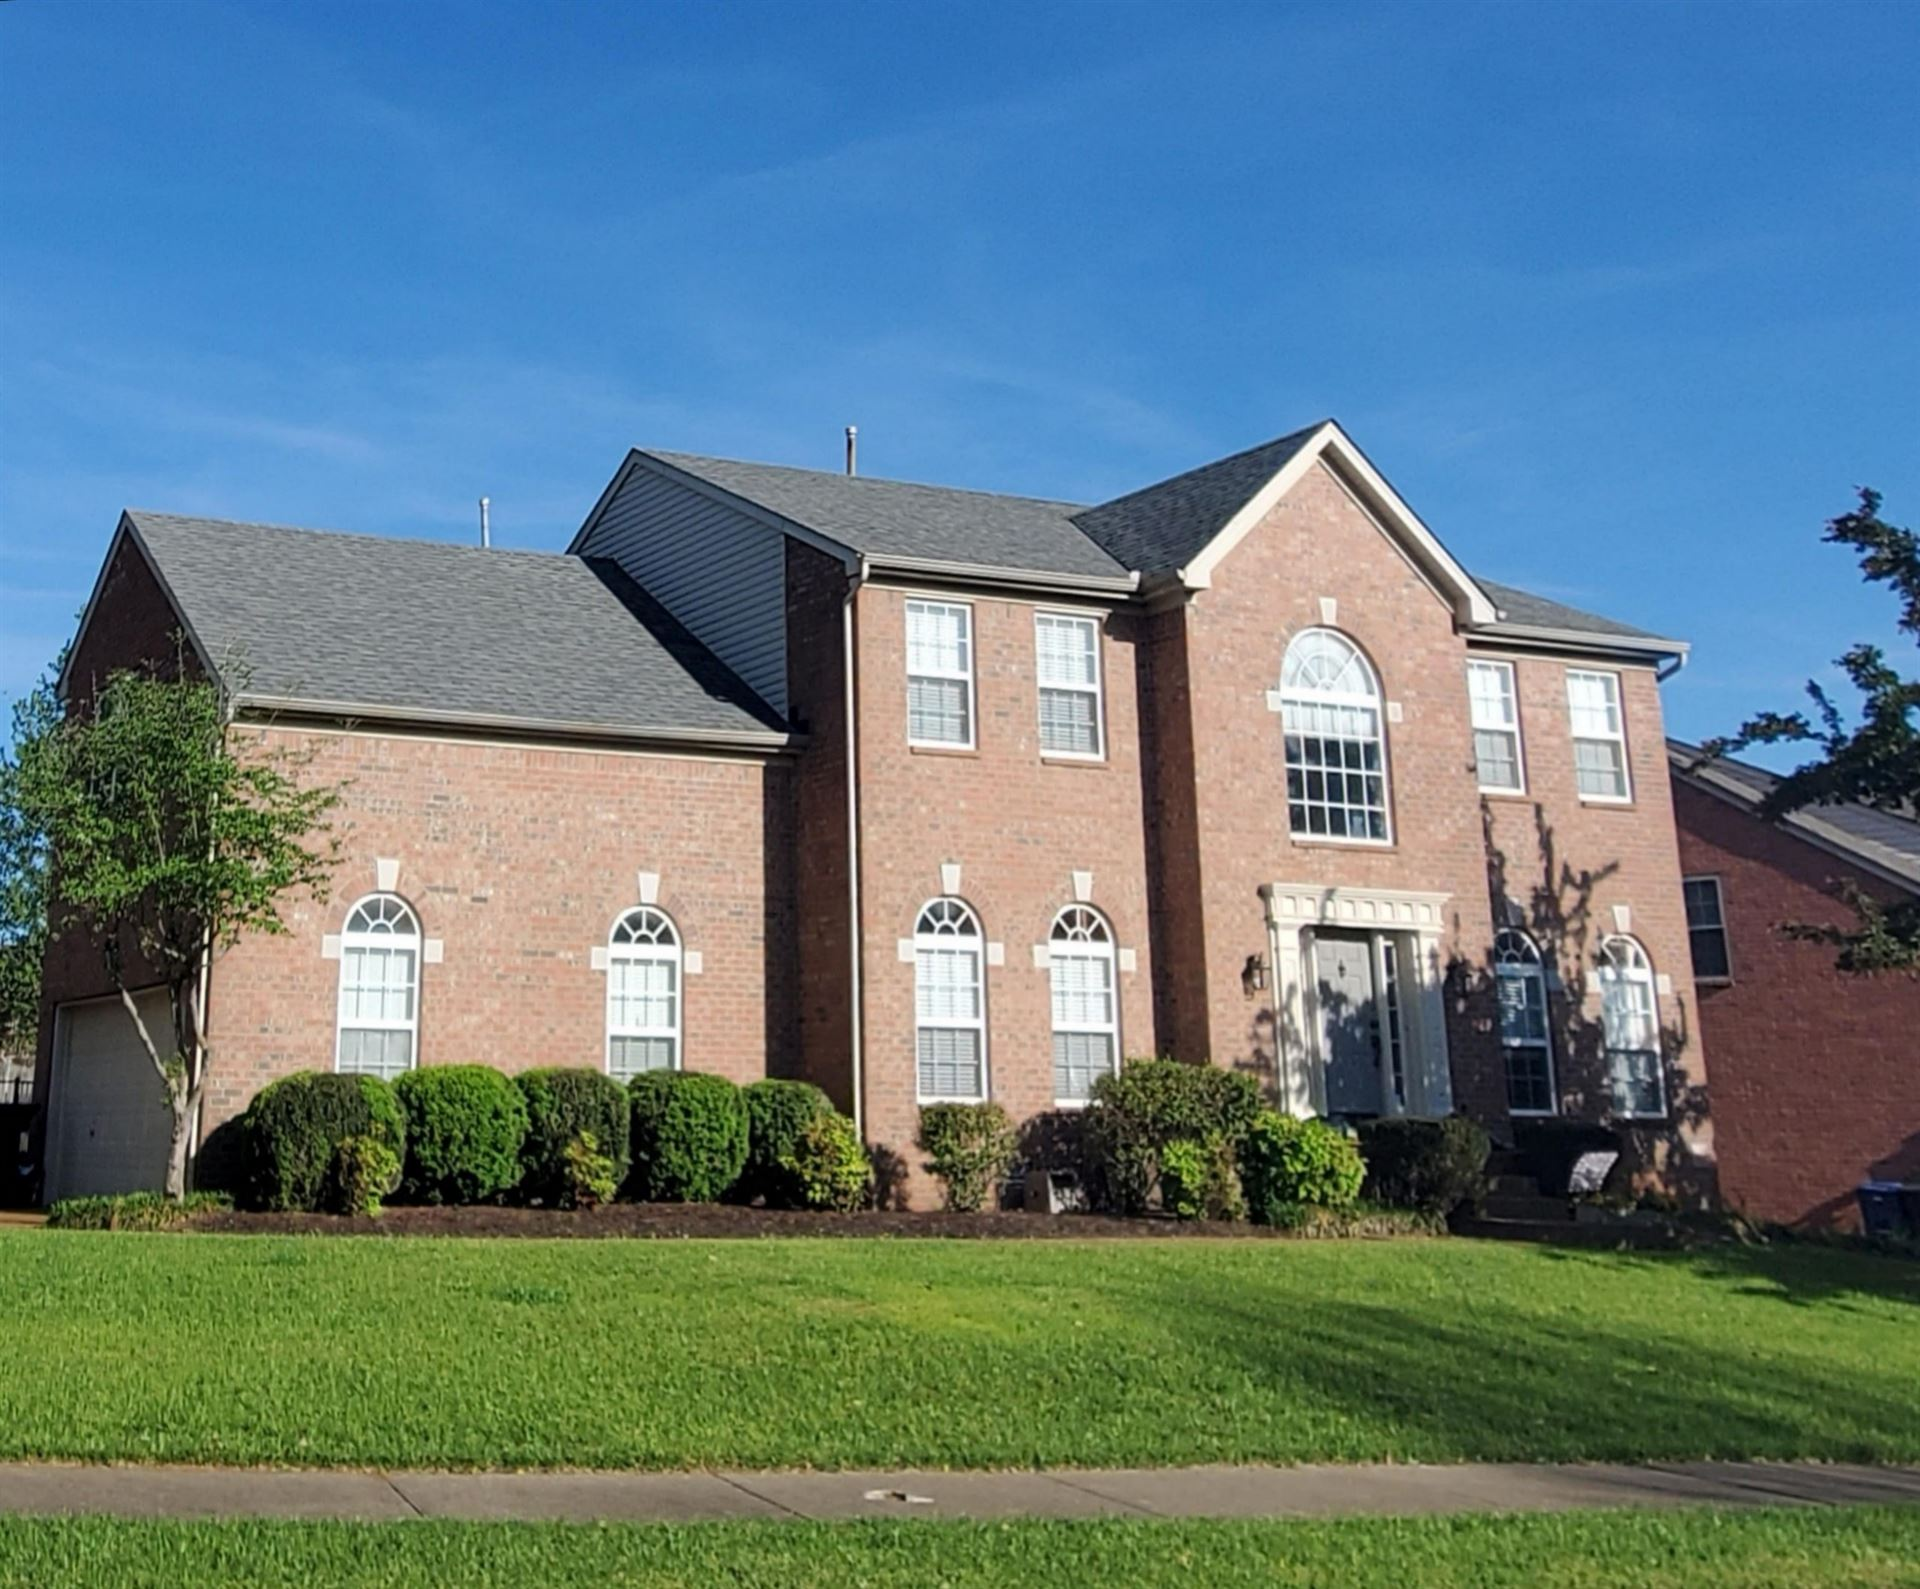 Photo of 107 Turnberry Drive, Franklin, TN 37064 (MLS # 2284655)